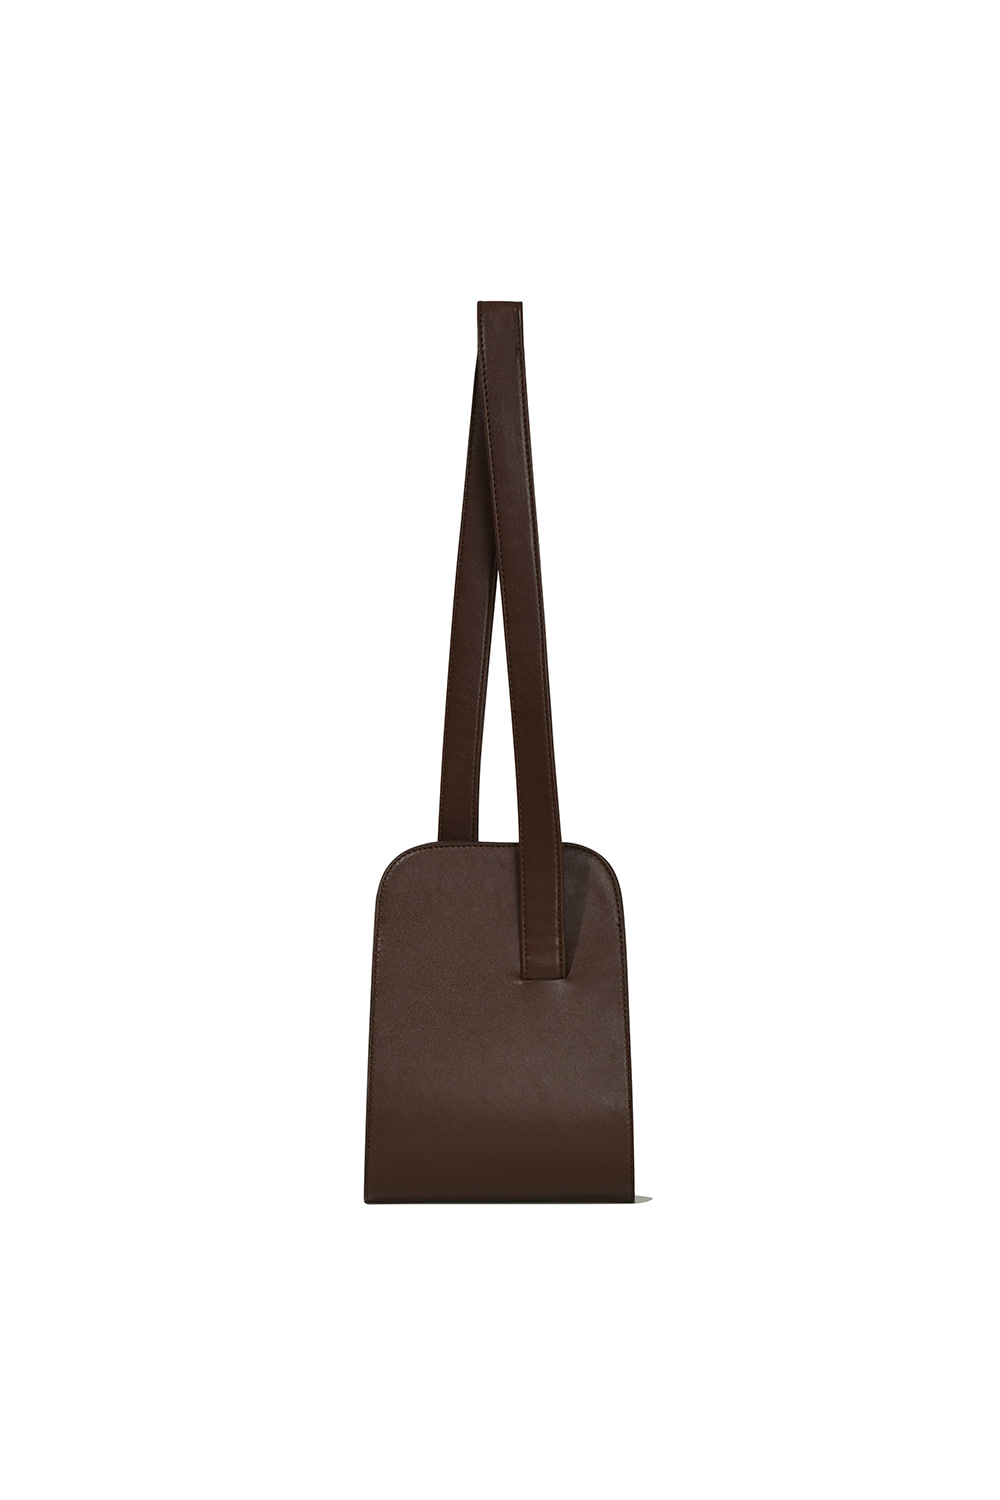 Mini Curved Bags Women [Brown] -20%